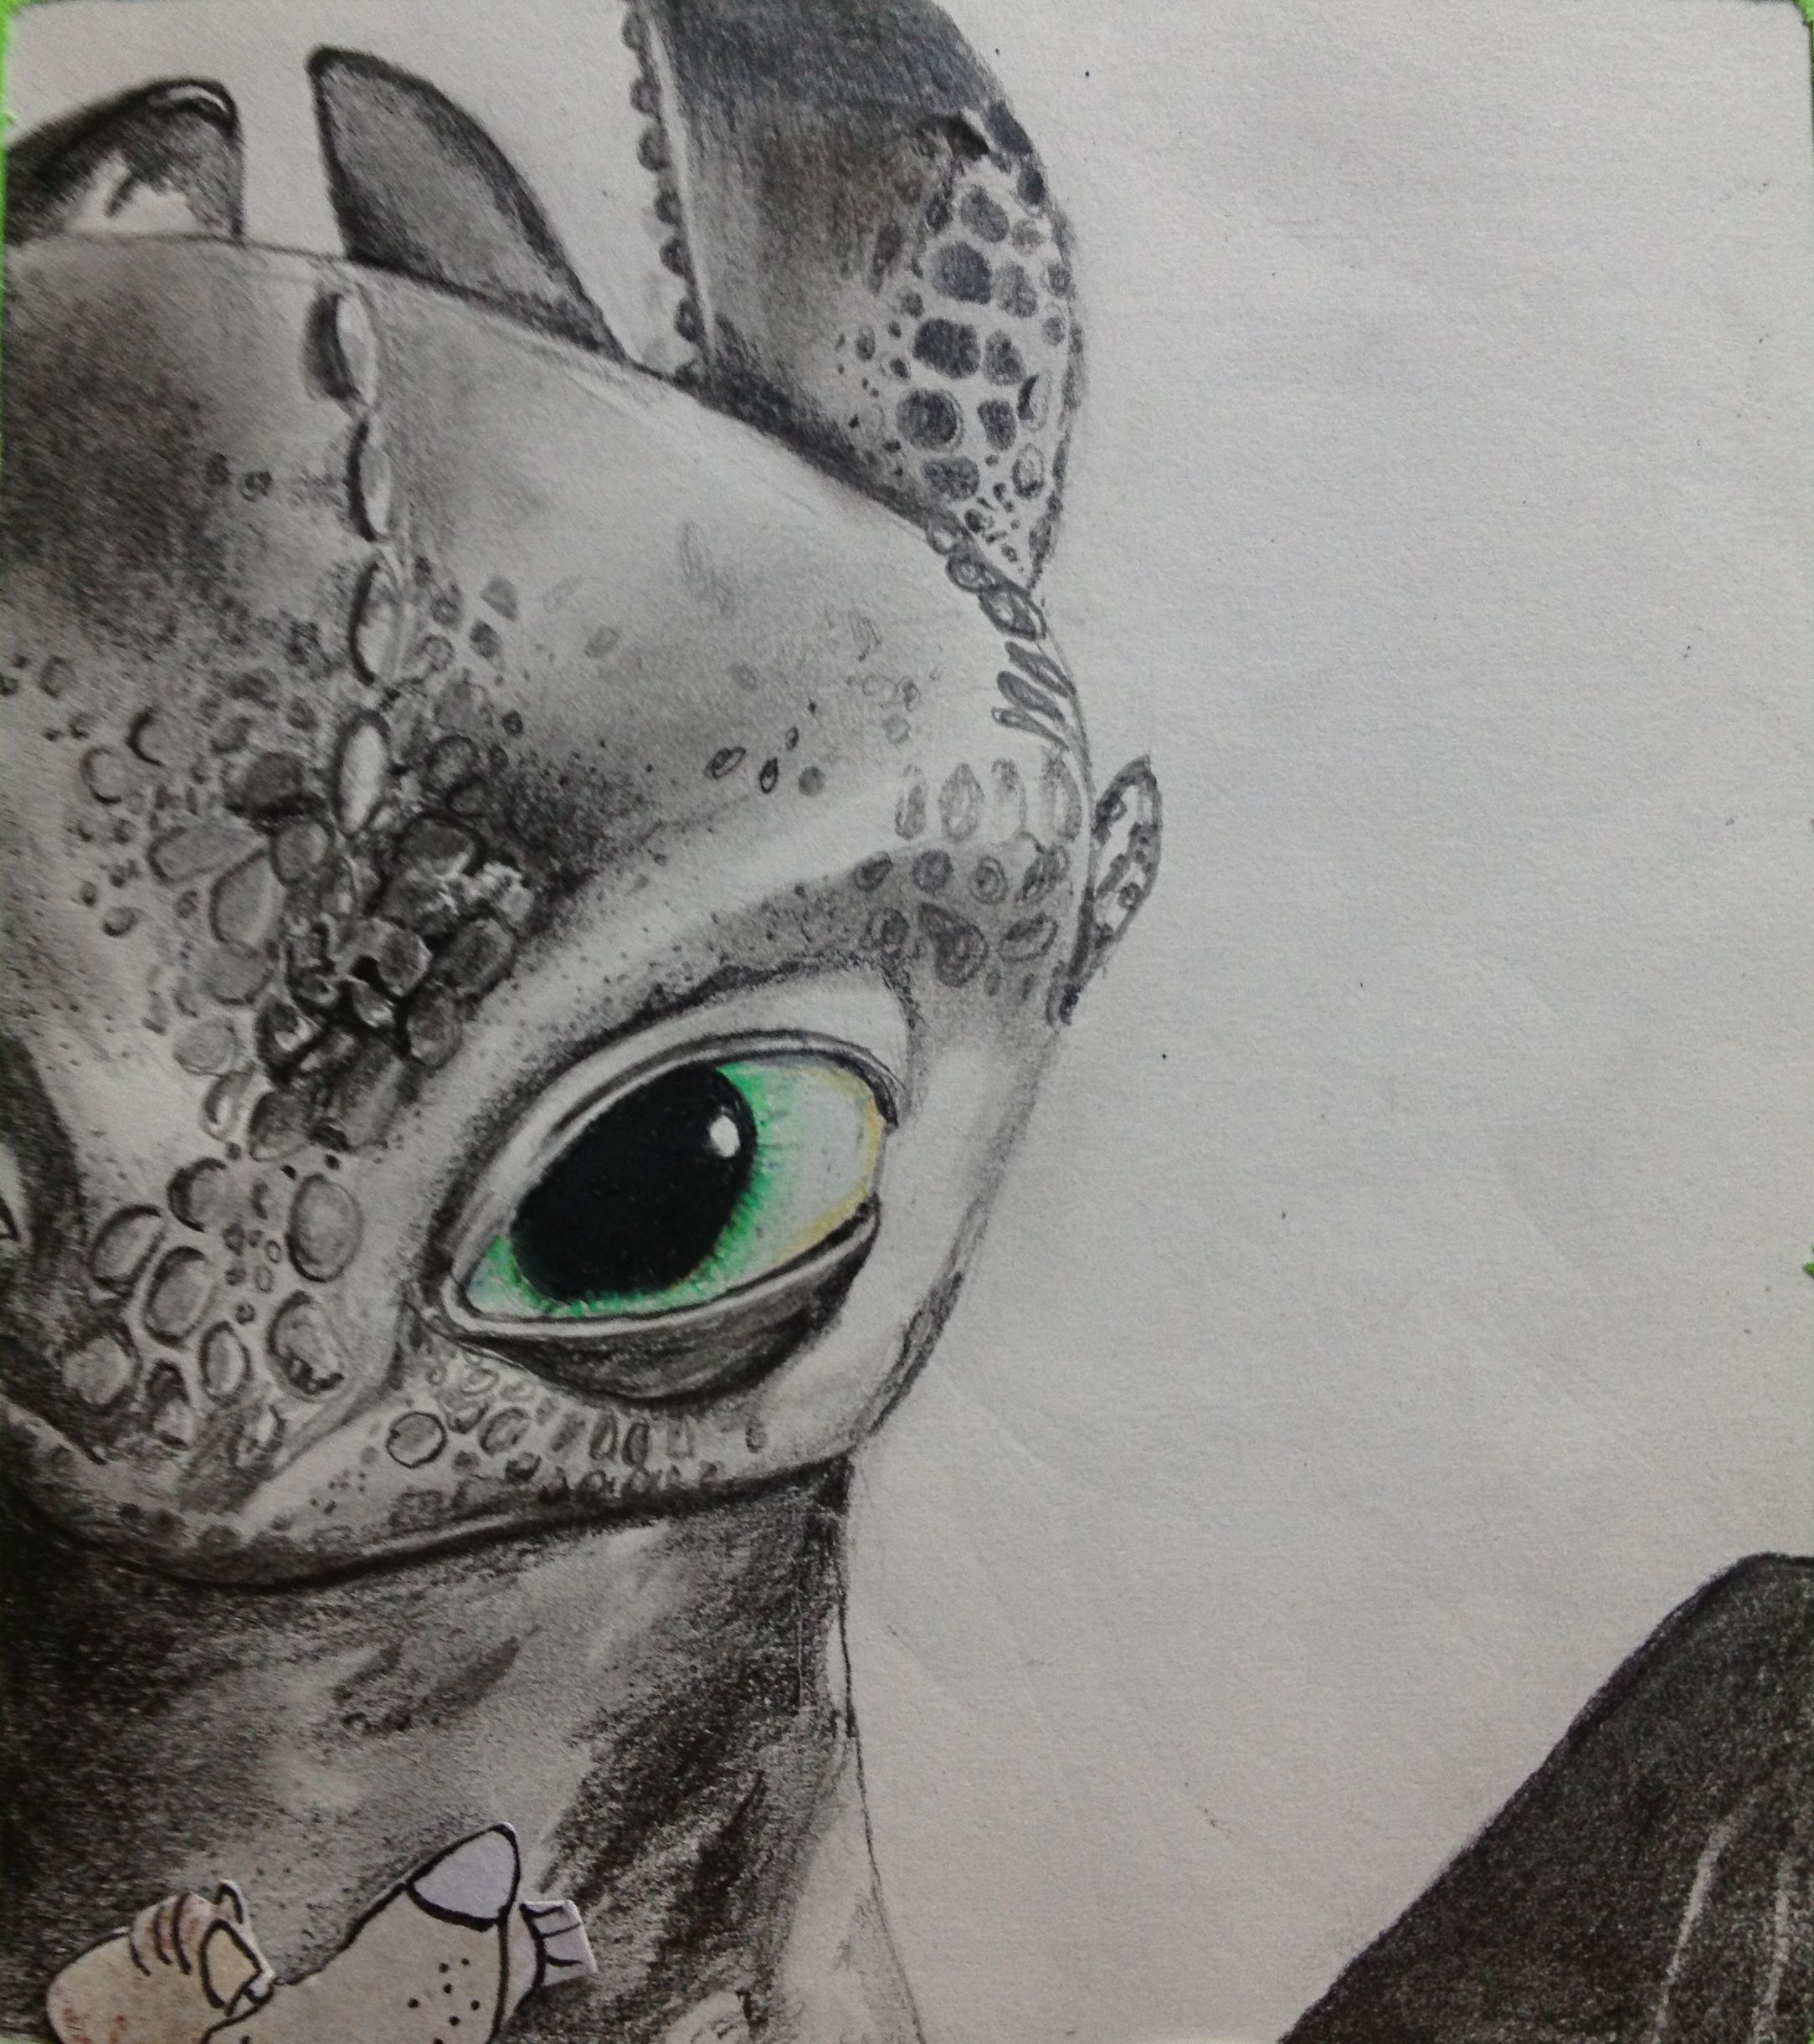 Art By Gloria E Toothless How To Train Your Dragon Drawing Charcoal Pencil Black Green Eye